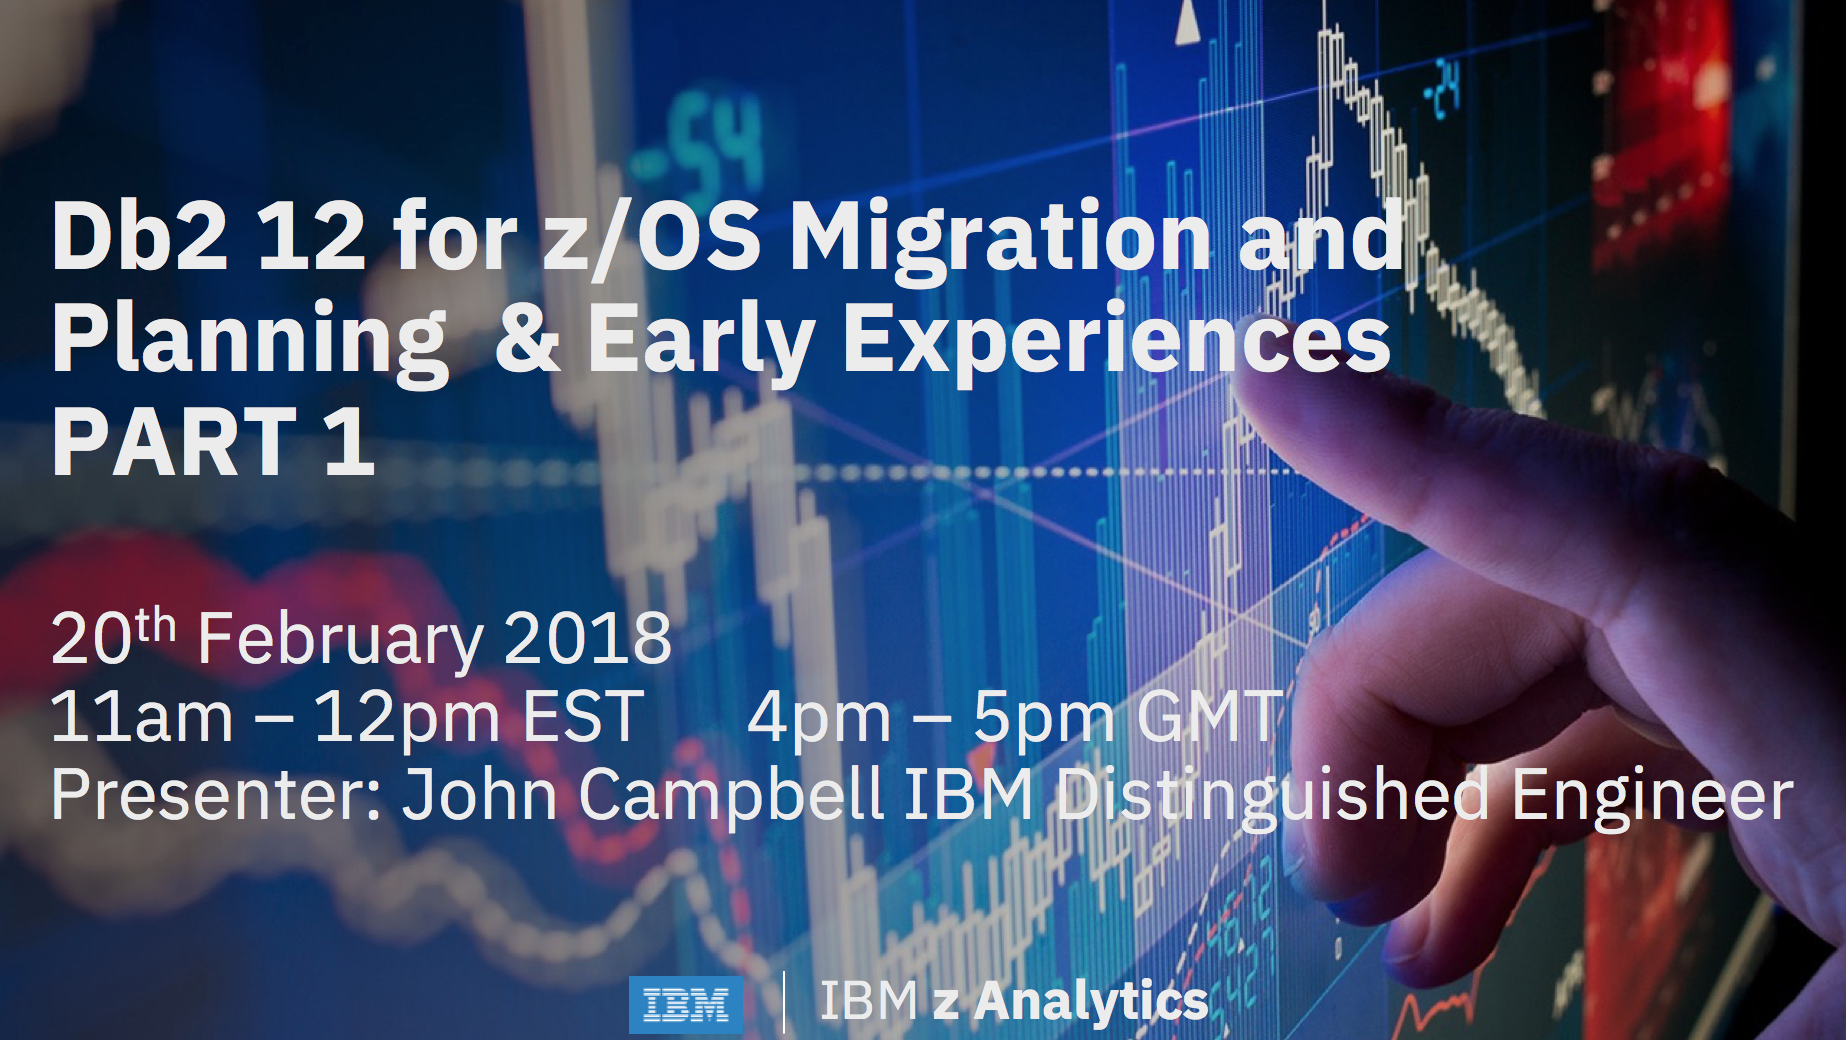 Db2 12 Migration Planning & Early Experiences PART 1